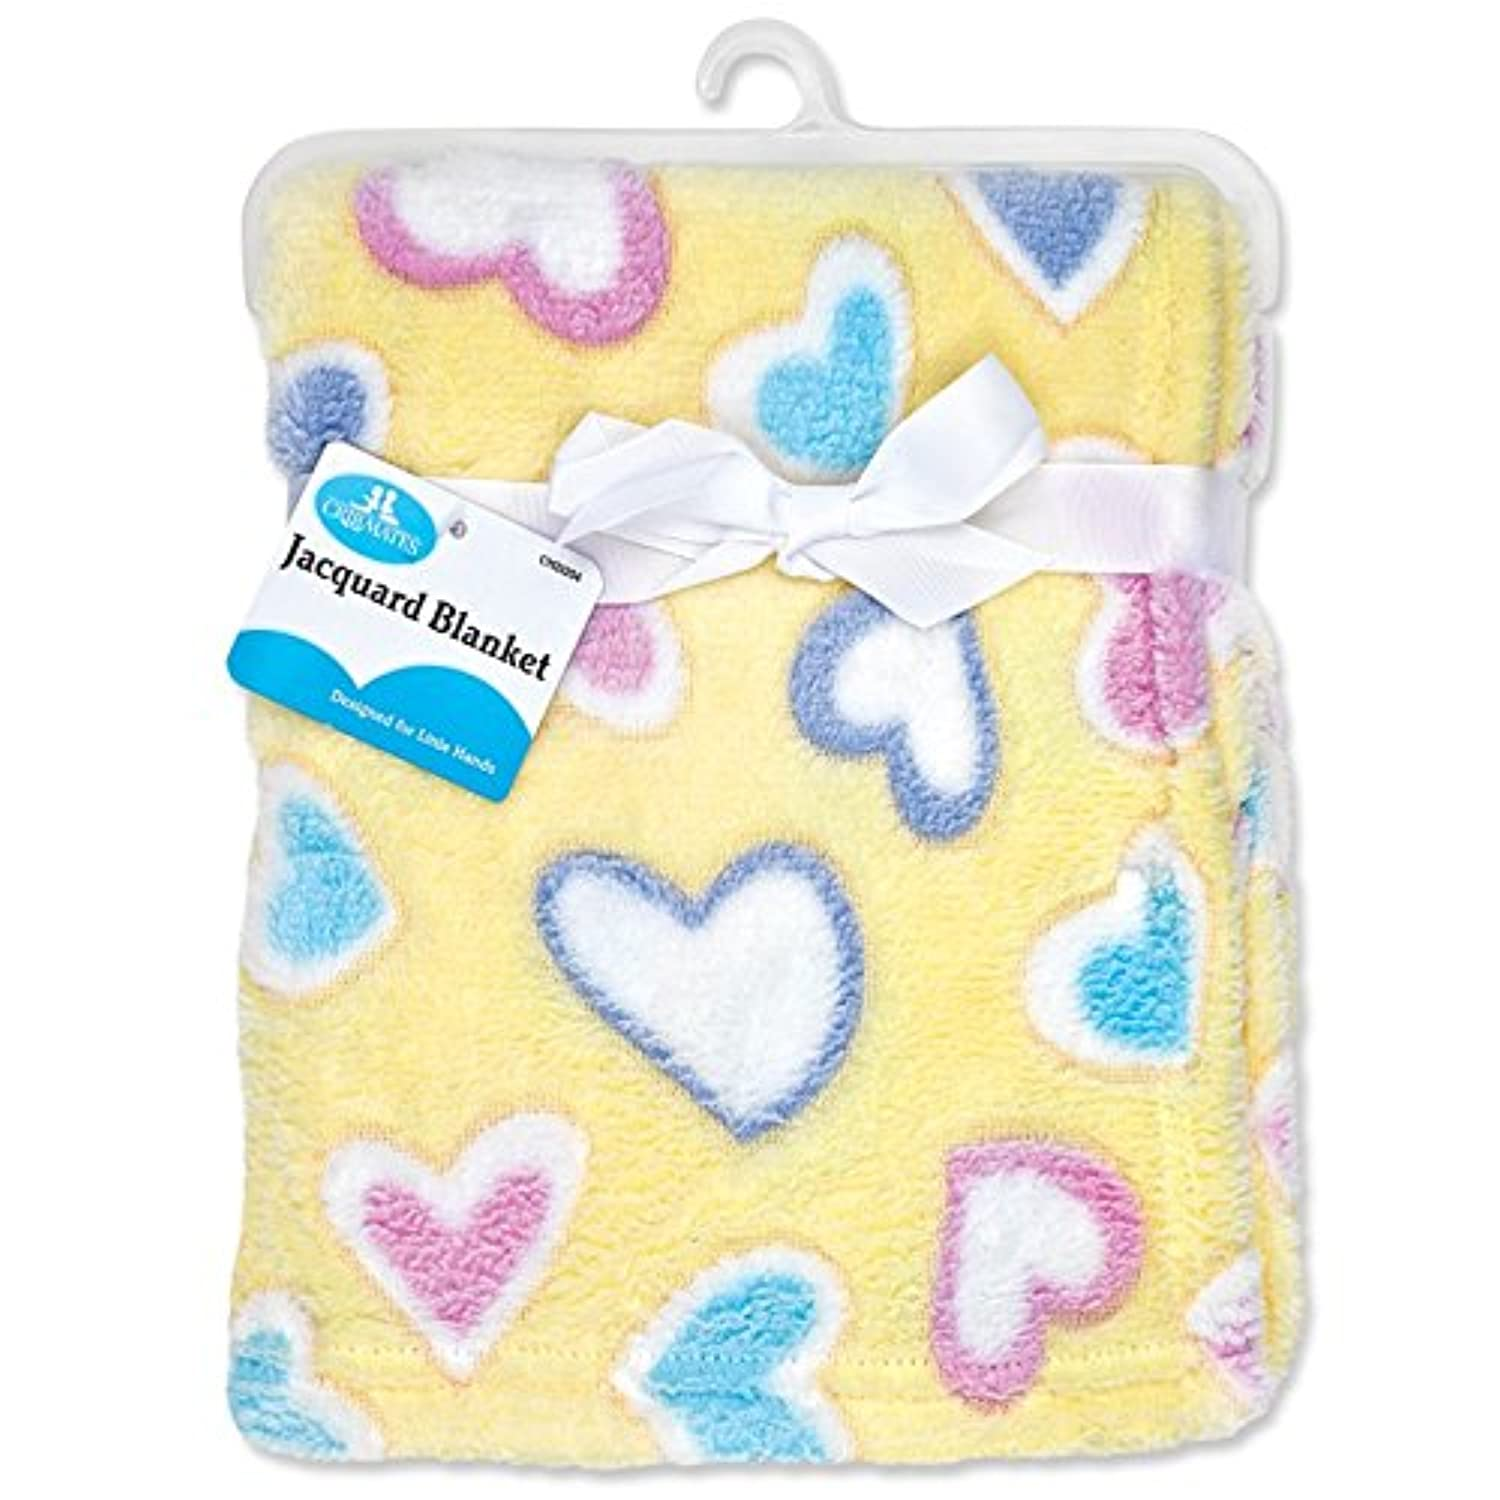 Regent Baby Crib Mates Blanket, 30 x 30 (Assorted Colors/Styles) by Regent Baby